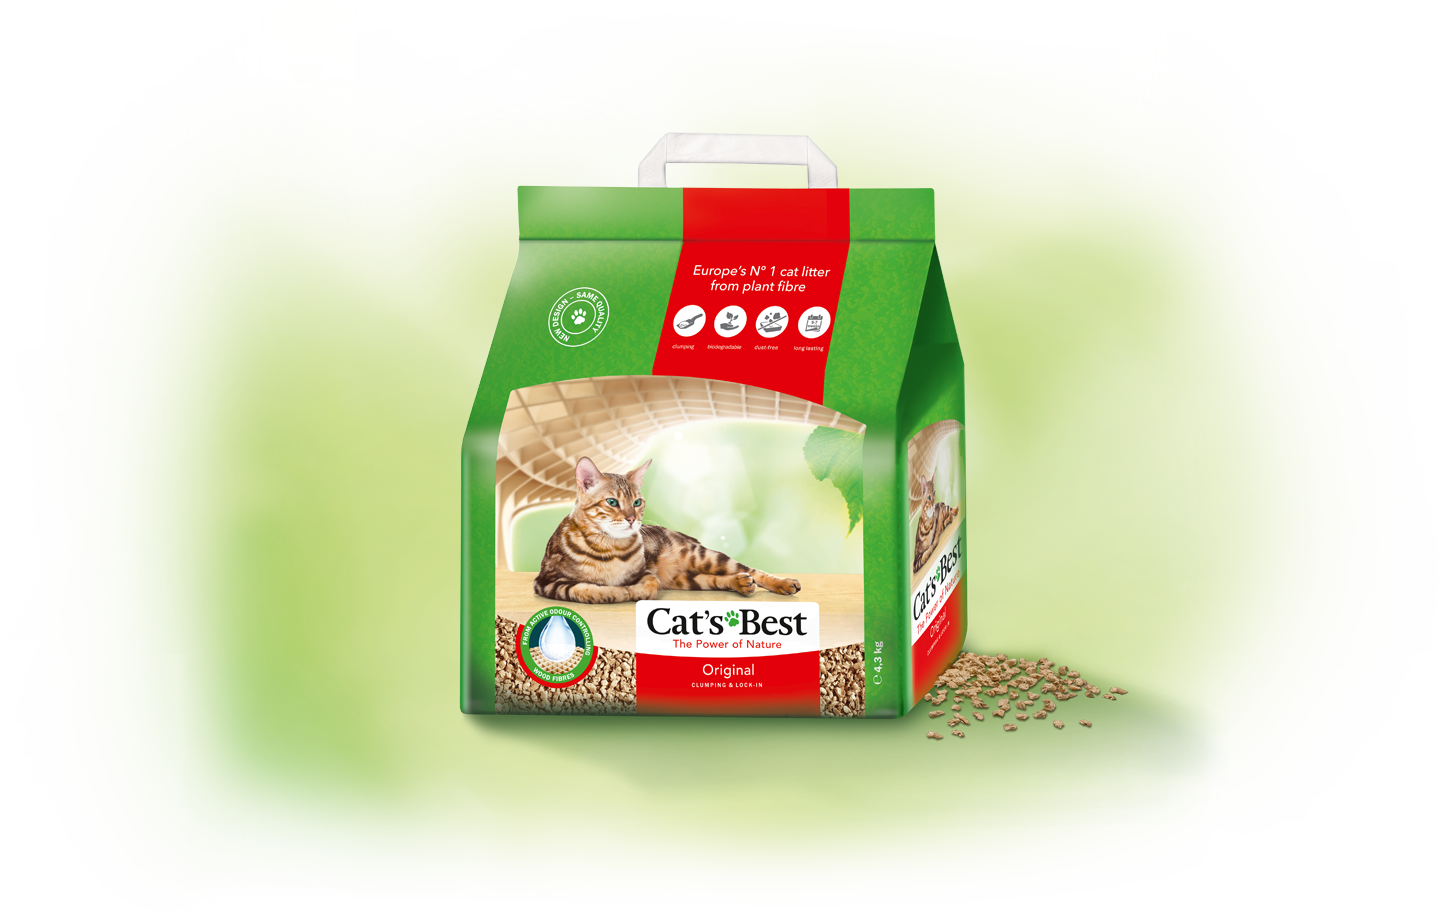 As a clumping cat litter, Cat's Best Original uses the